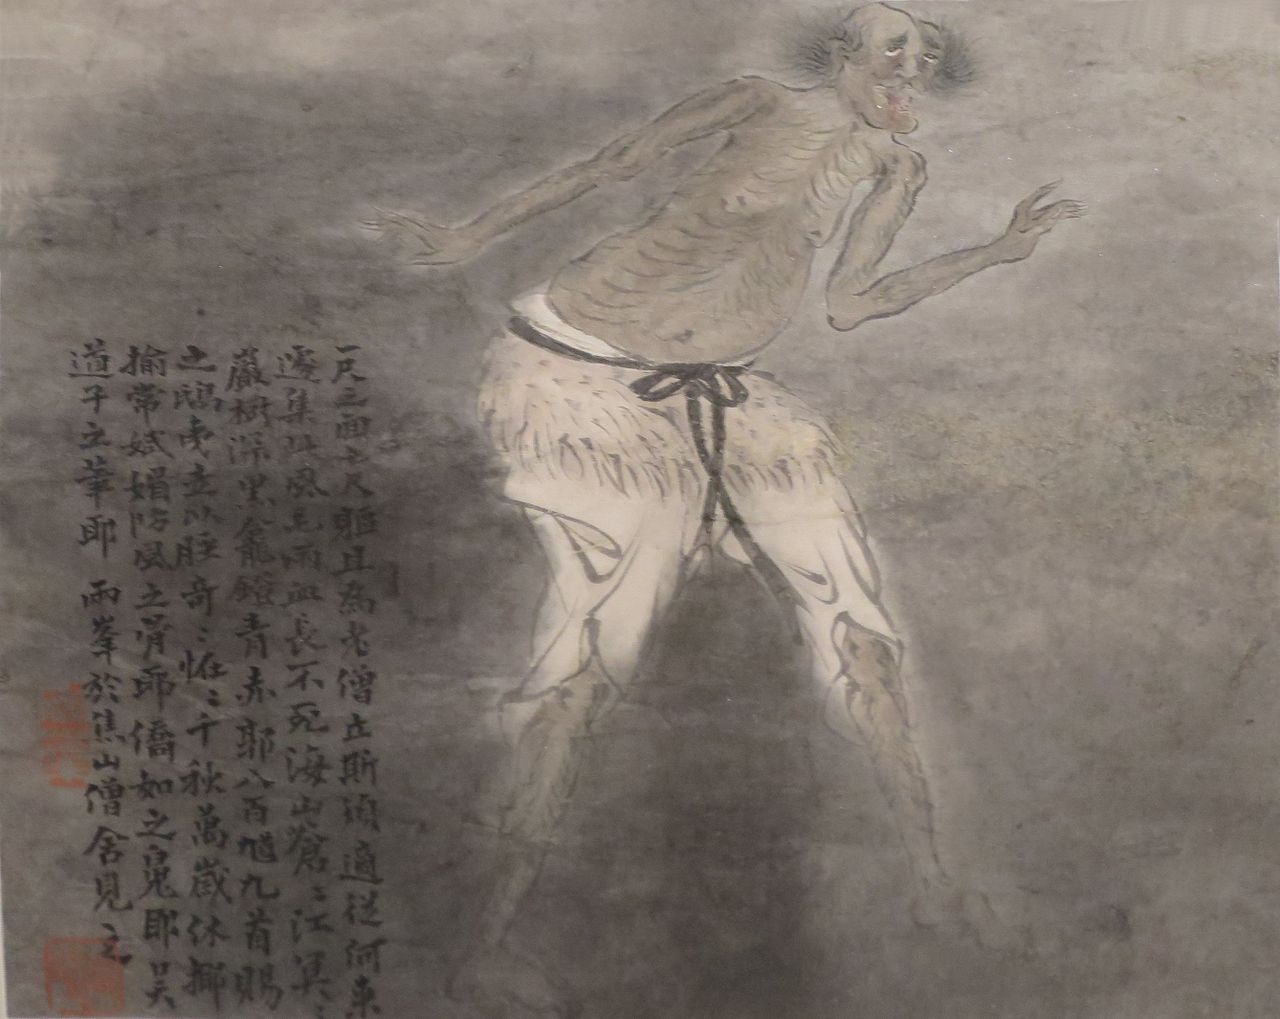 Long Term Loan >> File:Album of Ghost Paintings by Luo Ping, 18th century, long-term loan to the Honolulu Museum ...